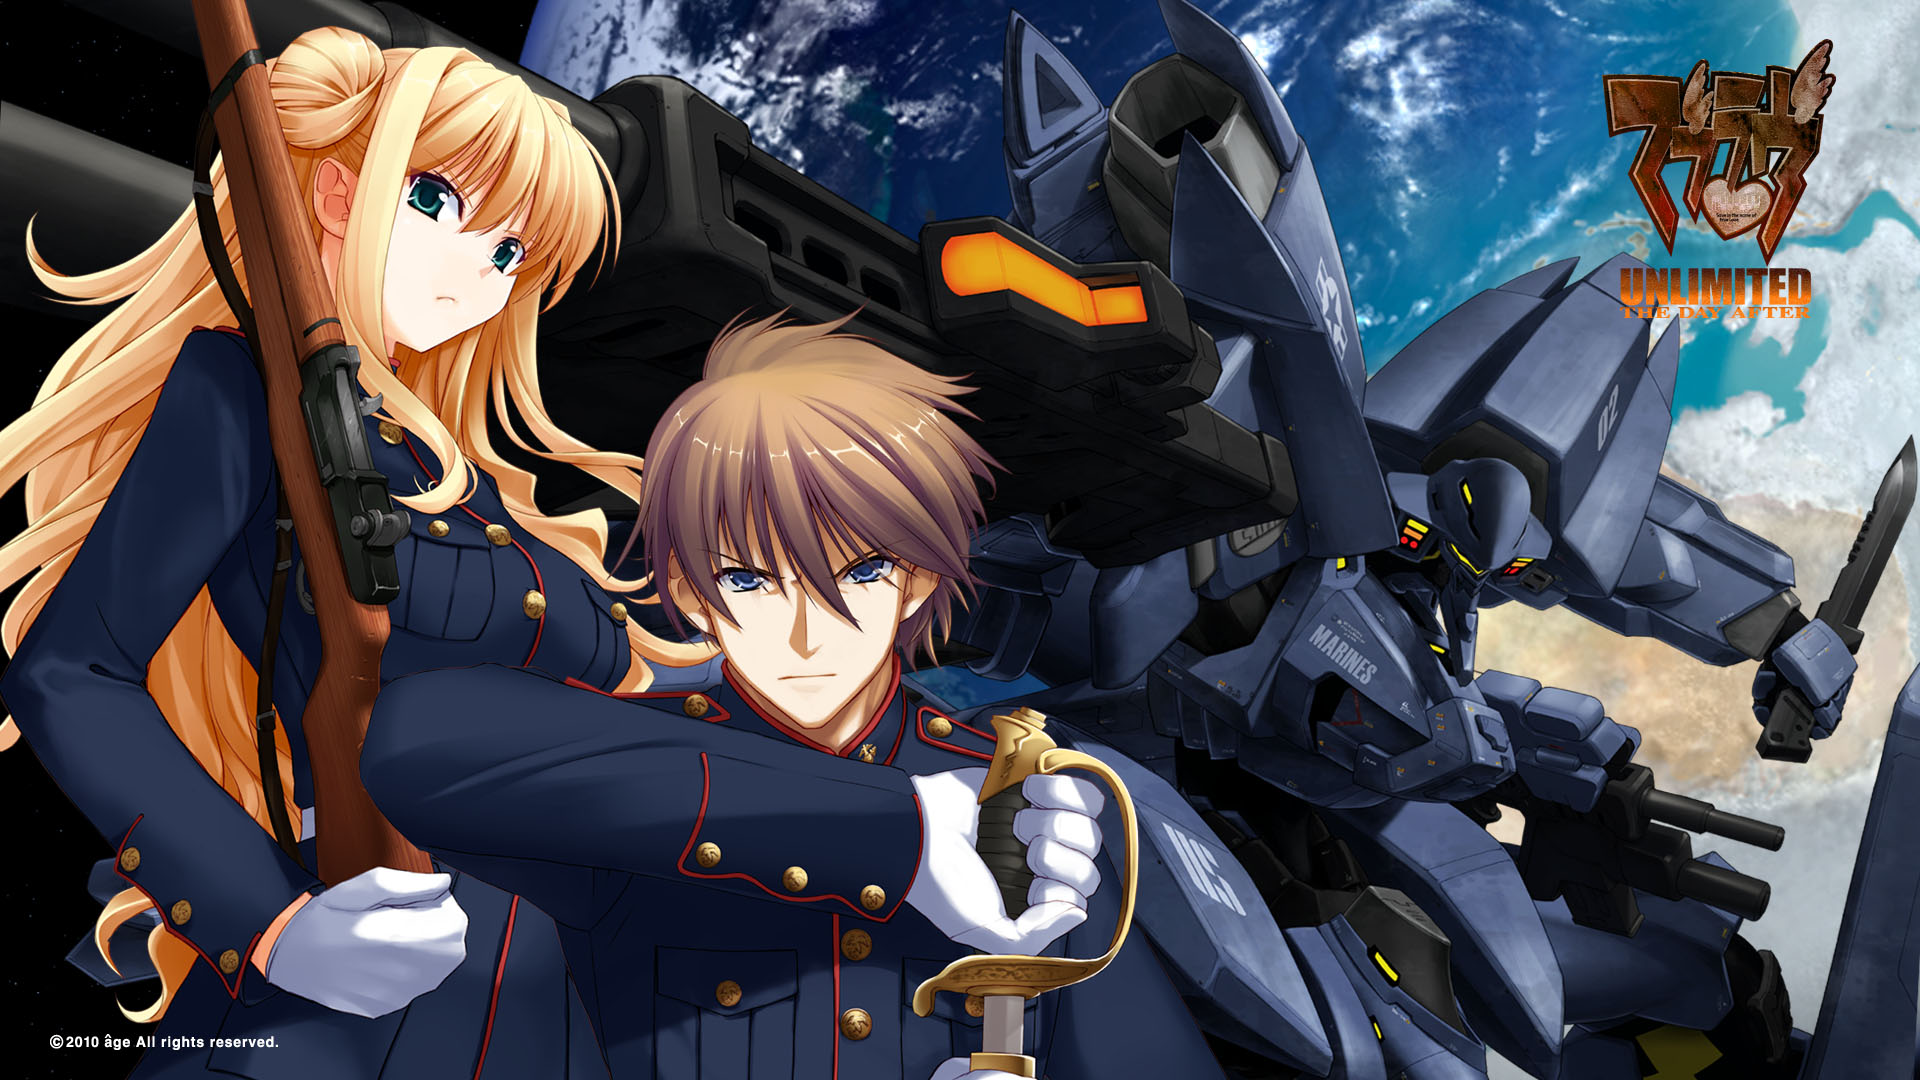 Muv Luv Alternative Chronicles HD Wallpaper 244023   Zerochan 1920x1080